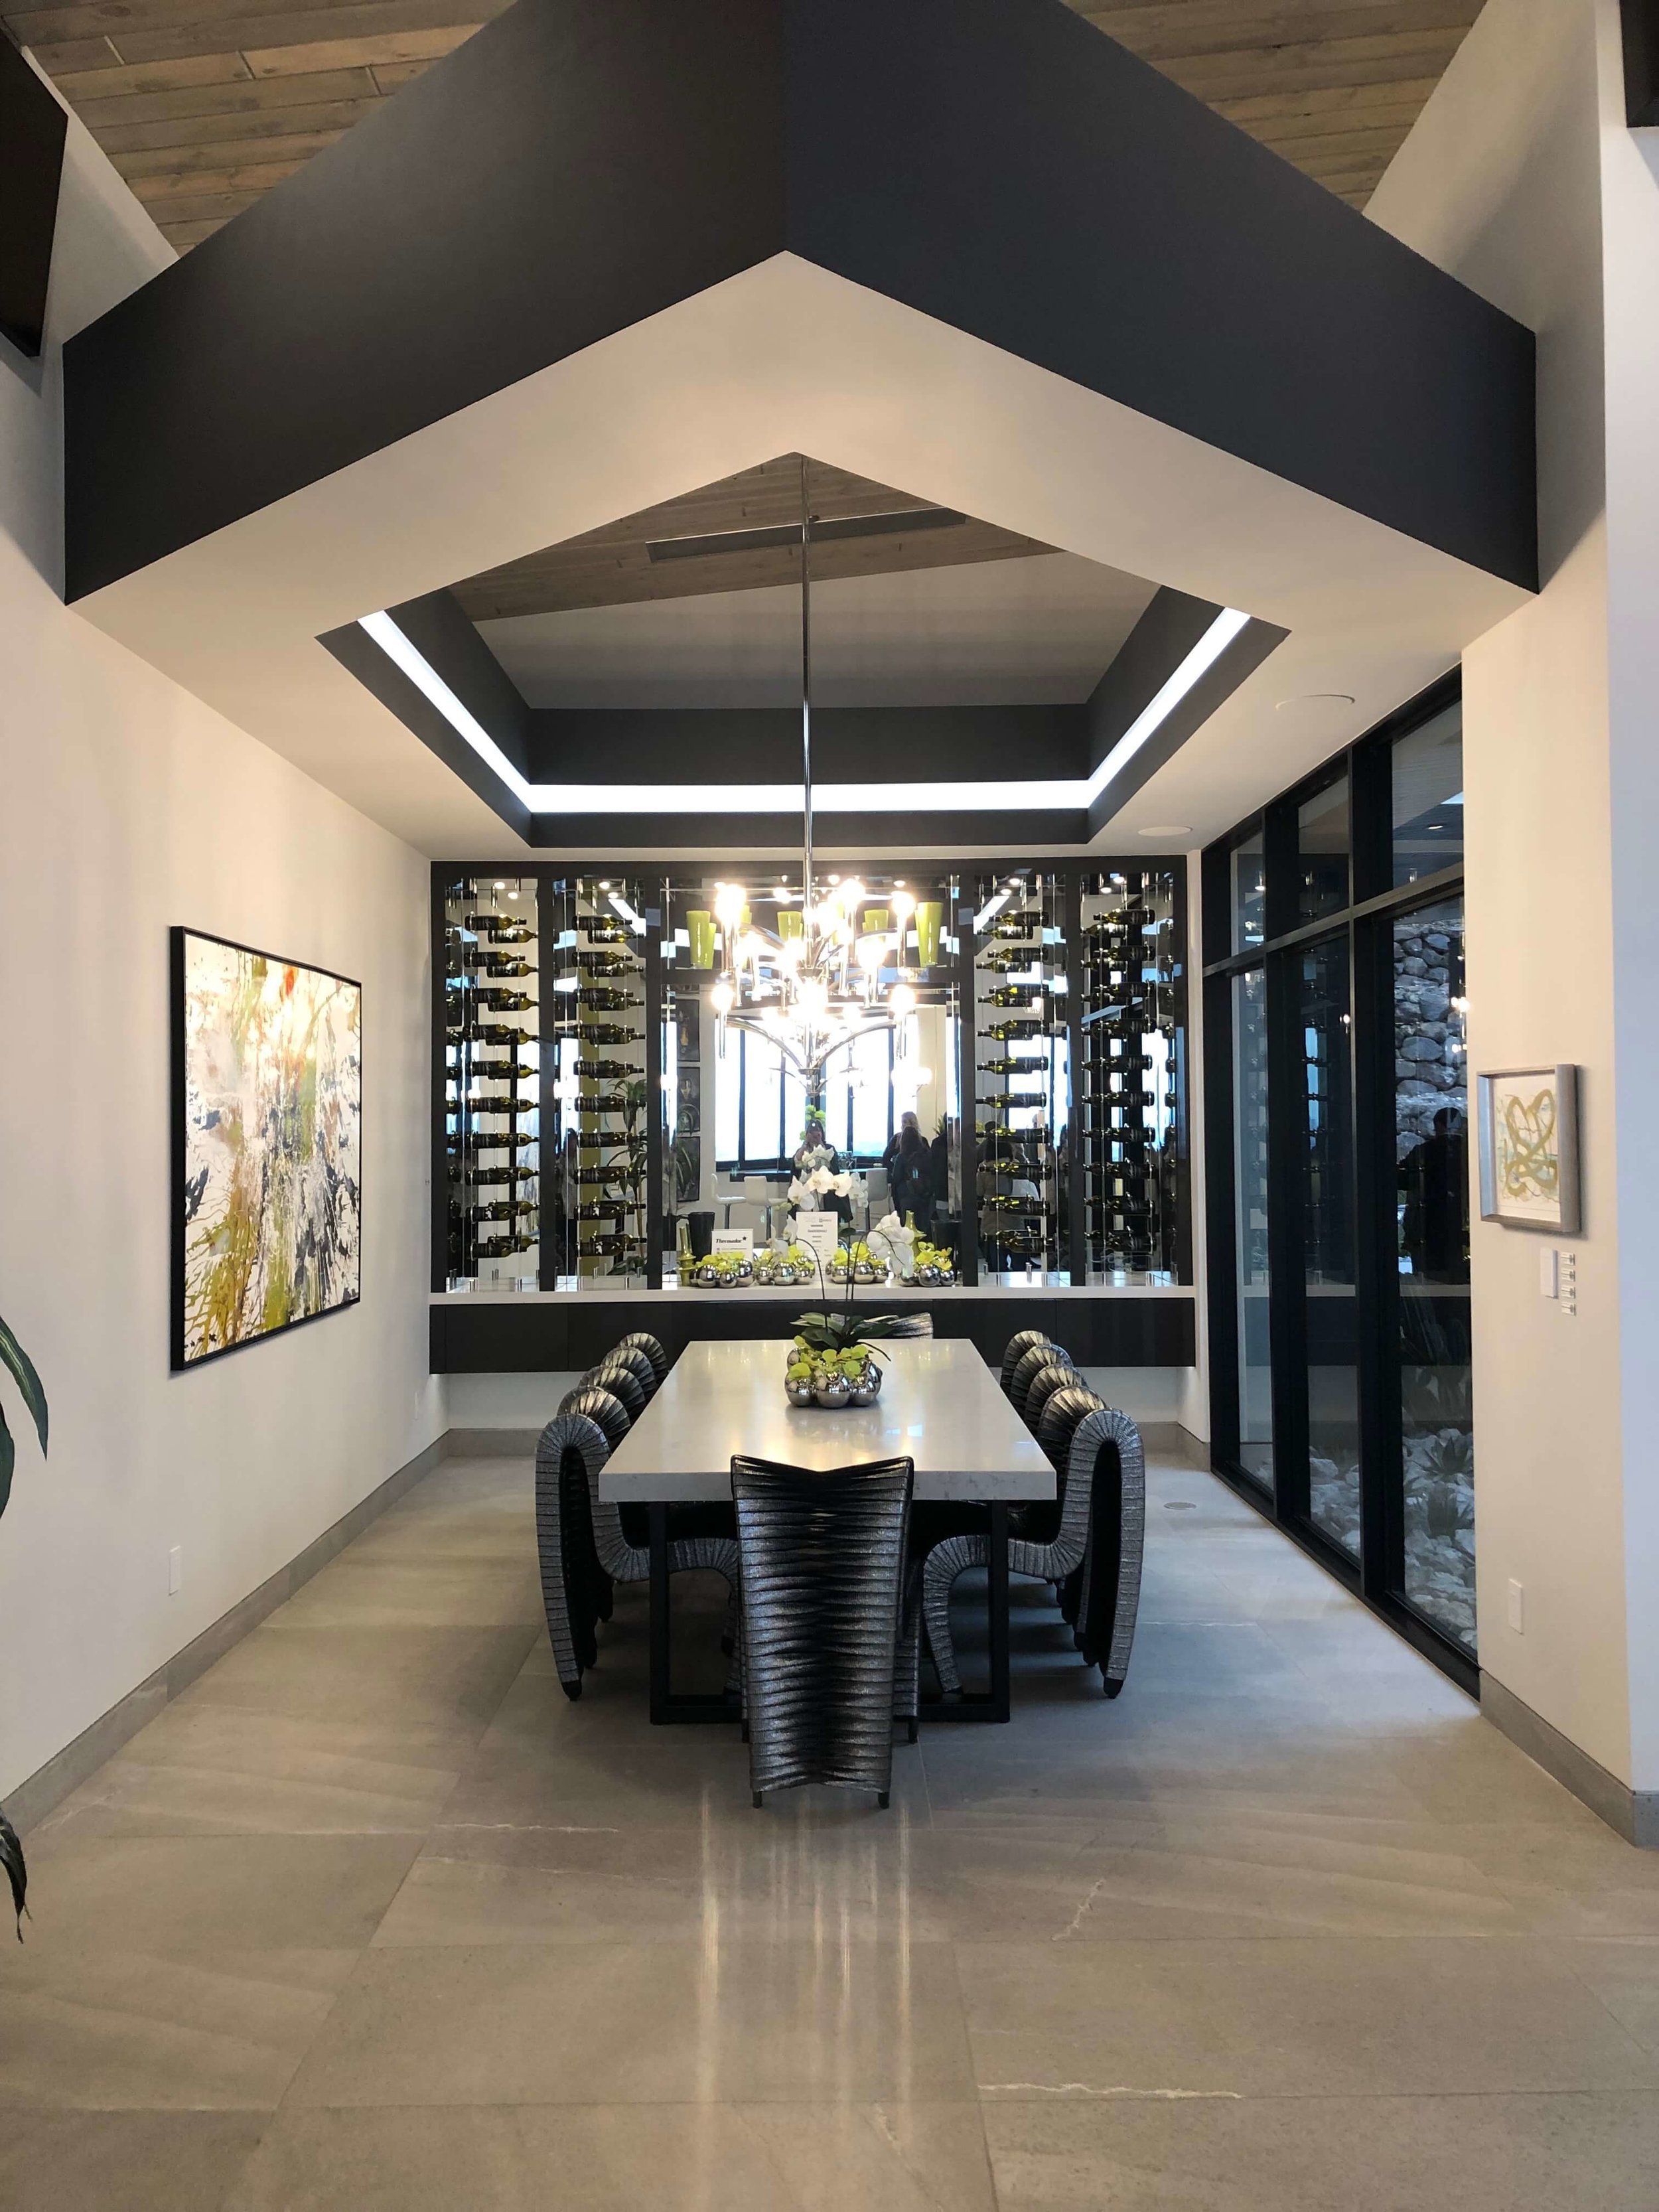 Dining Room, The New American Home Tour 2019 | Designed and built by Sun West Custom Homes #contemporaryhome